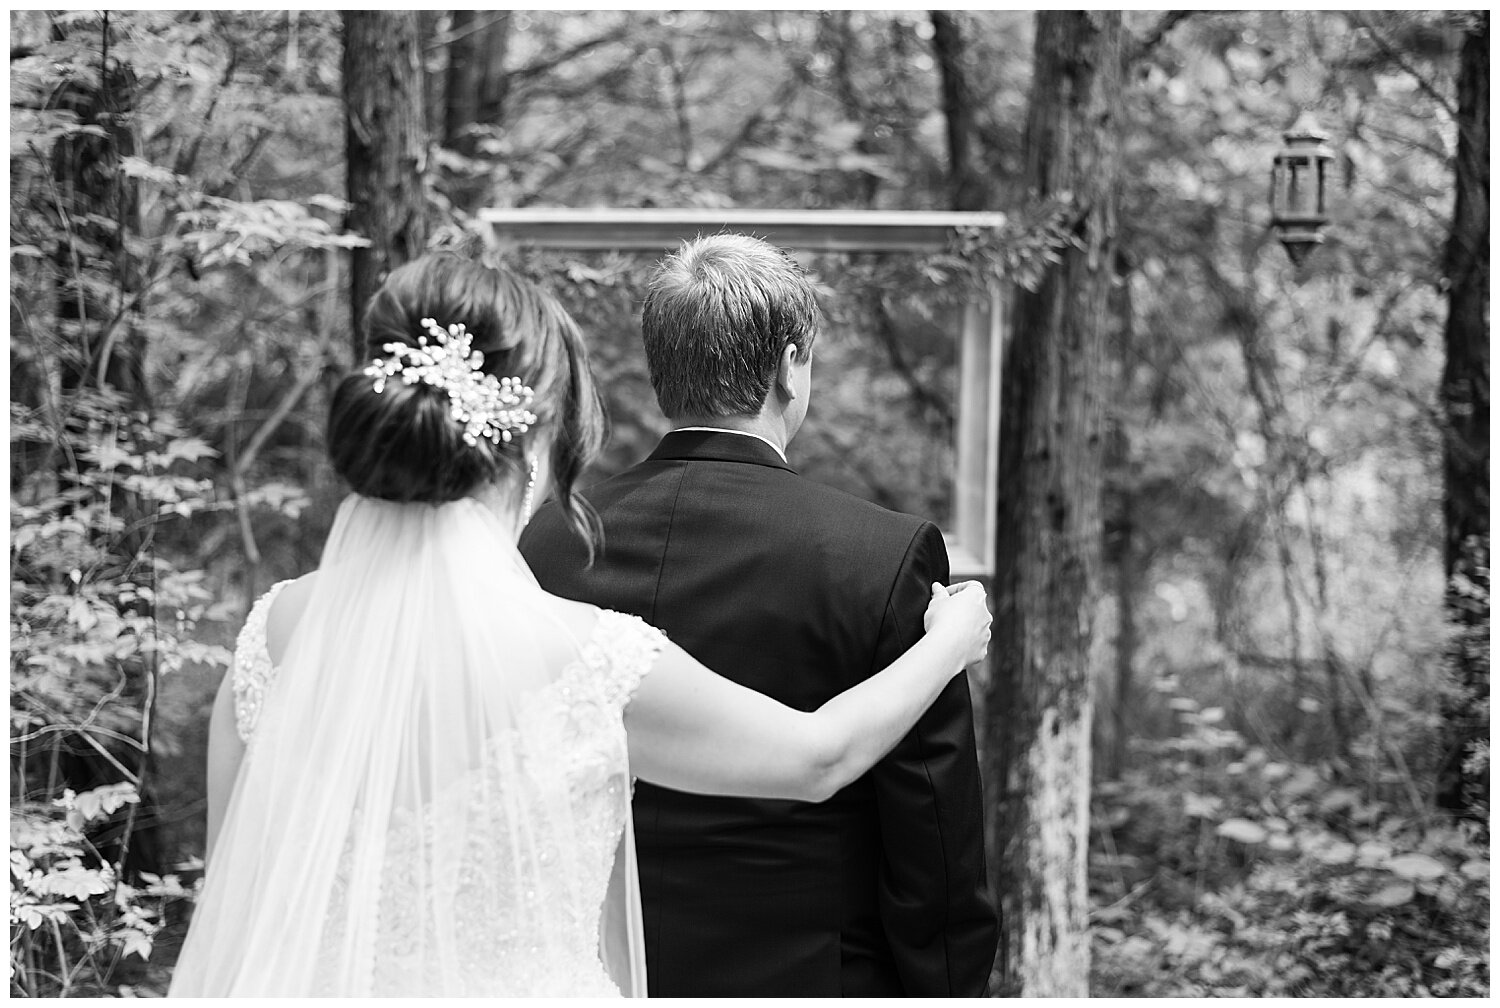 Oak_Openings_Engagement_session_Swanton_Ohio_Cassandra_Janina_Photography_Ohio_Wedding_Photographer_0353.jpg